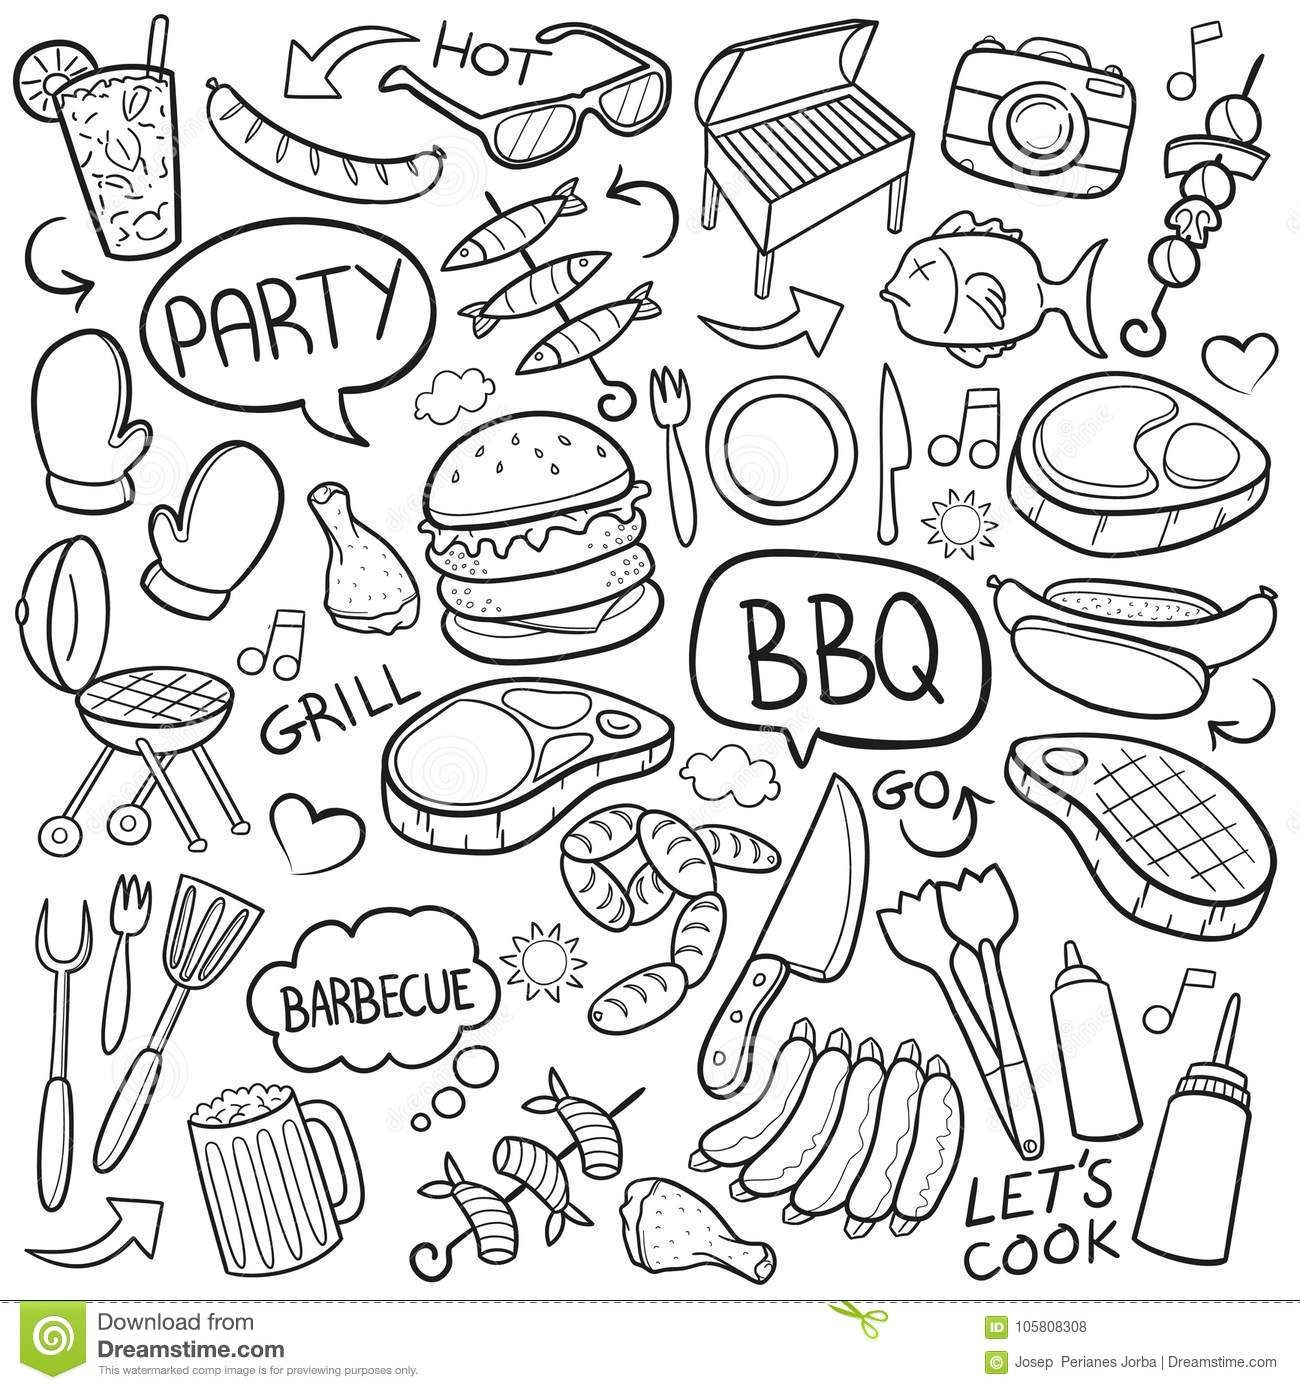 Bbq Barbecue Traditional Doodle Icons Sketch Hand Made